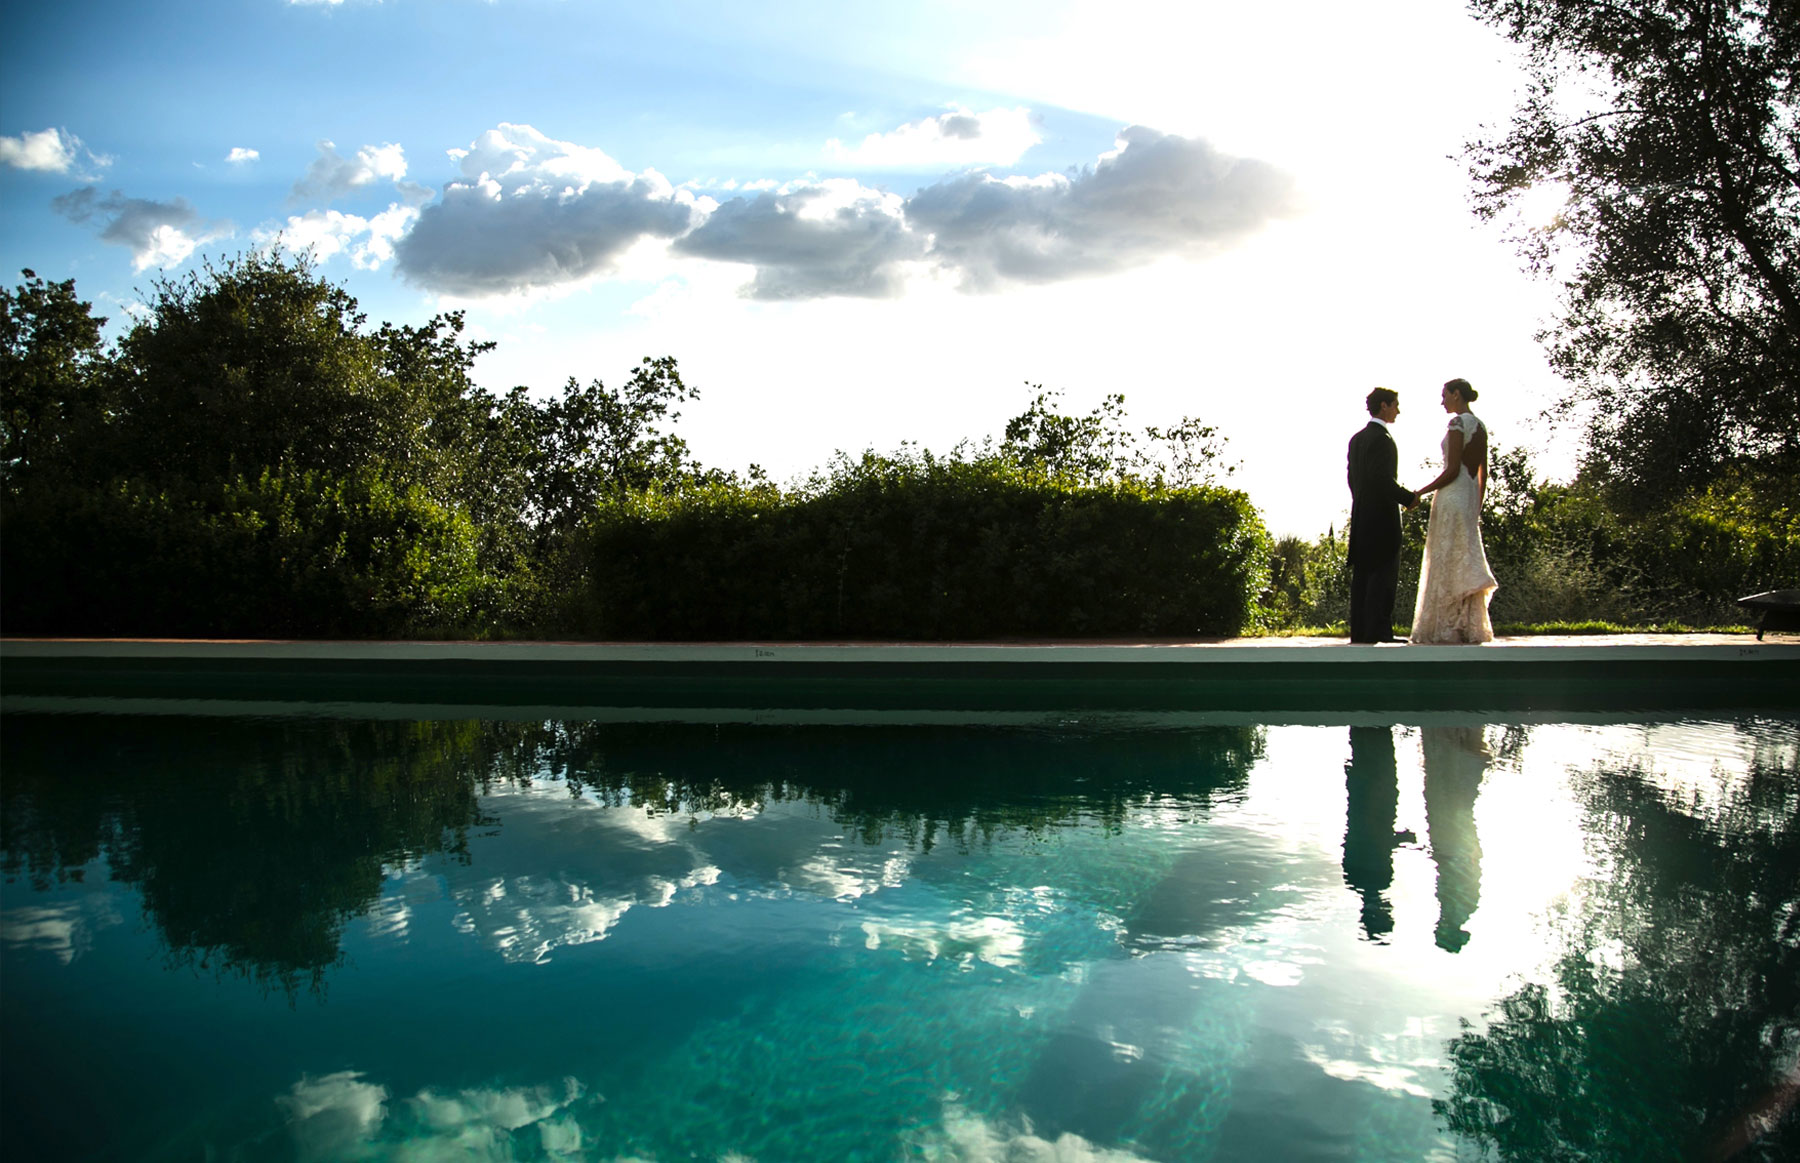 man and woman in wedding outfits standing by pool